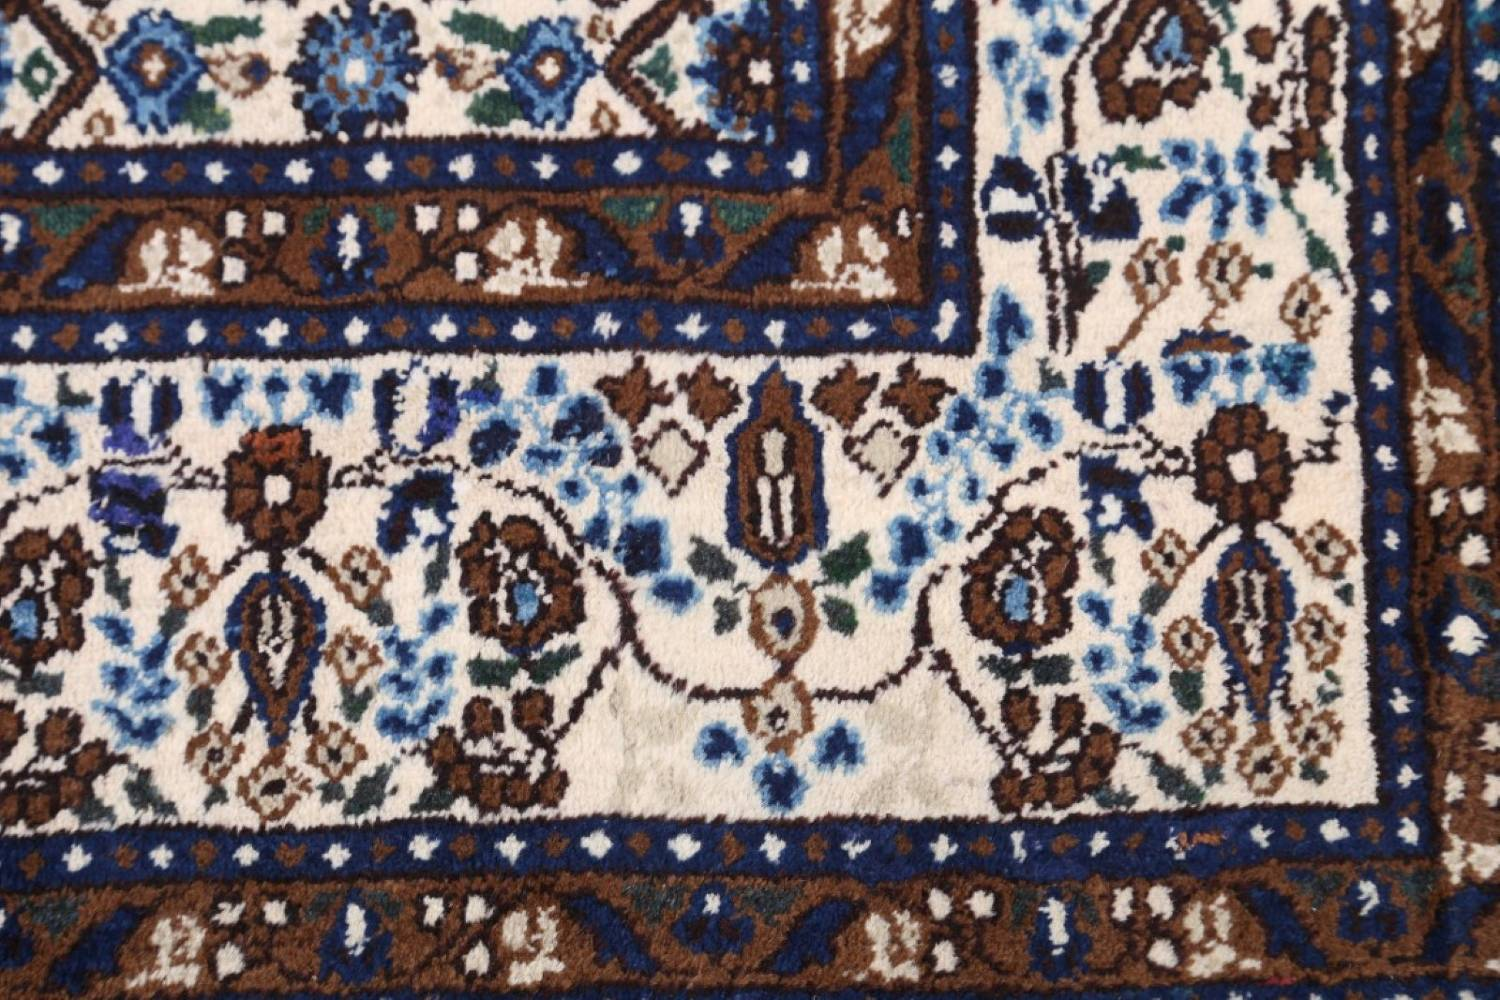 All-Over Floral 7x11 Mood Persian Wool Area Rug image 7